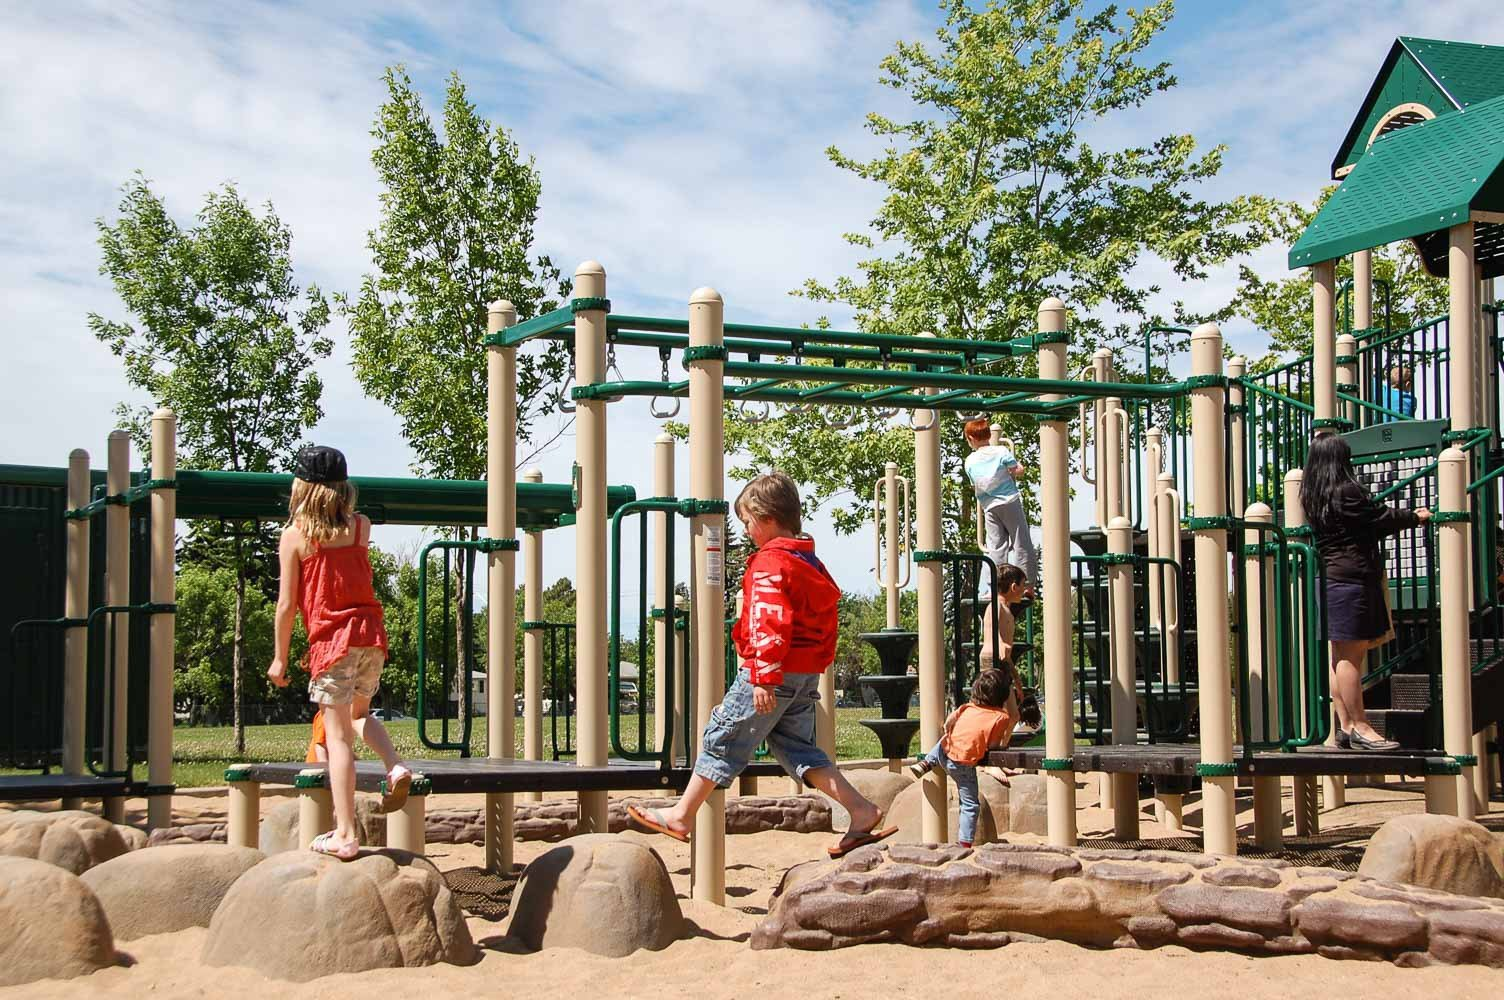 Avonmore Community League Playground